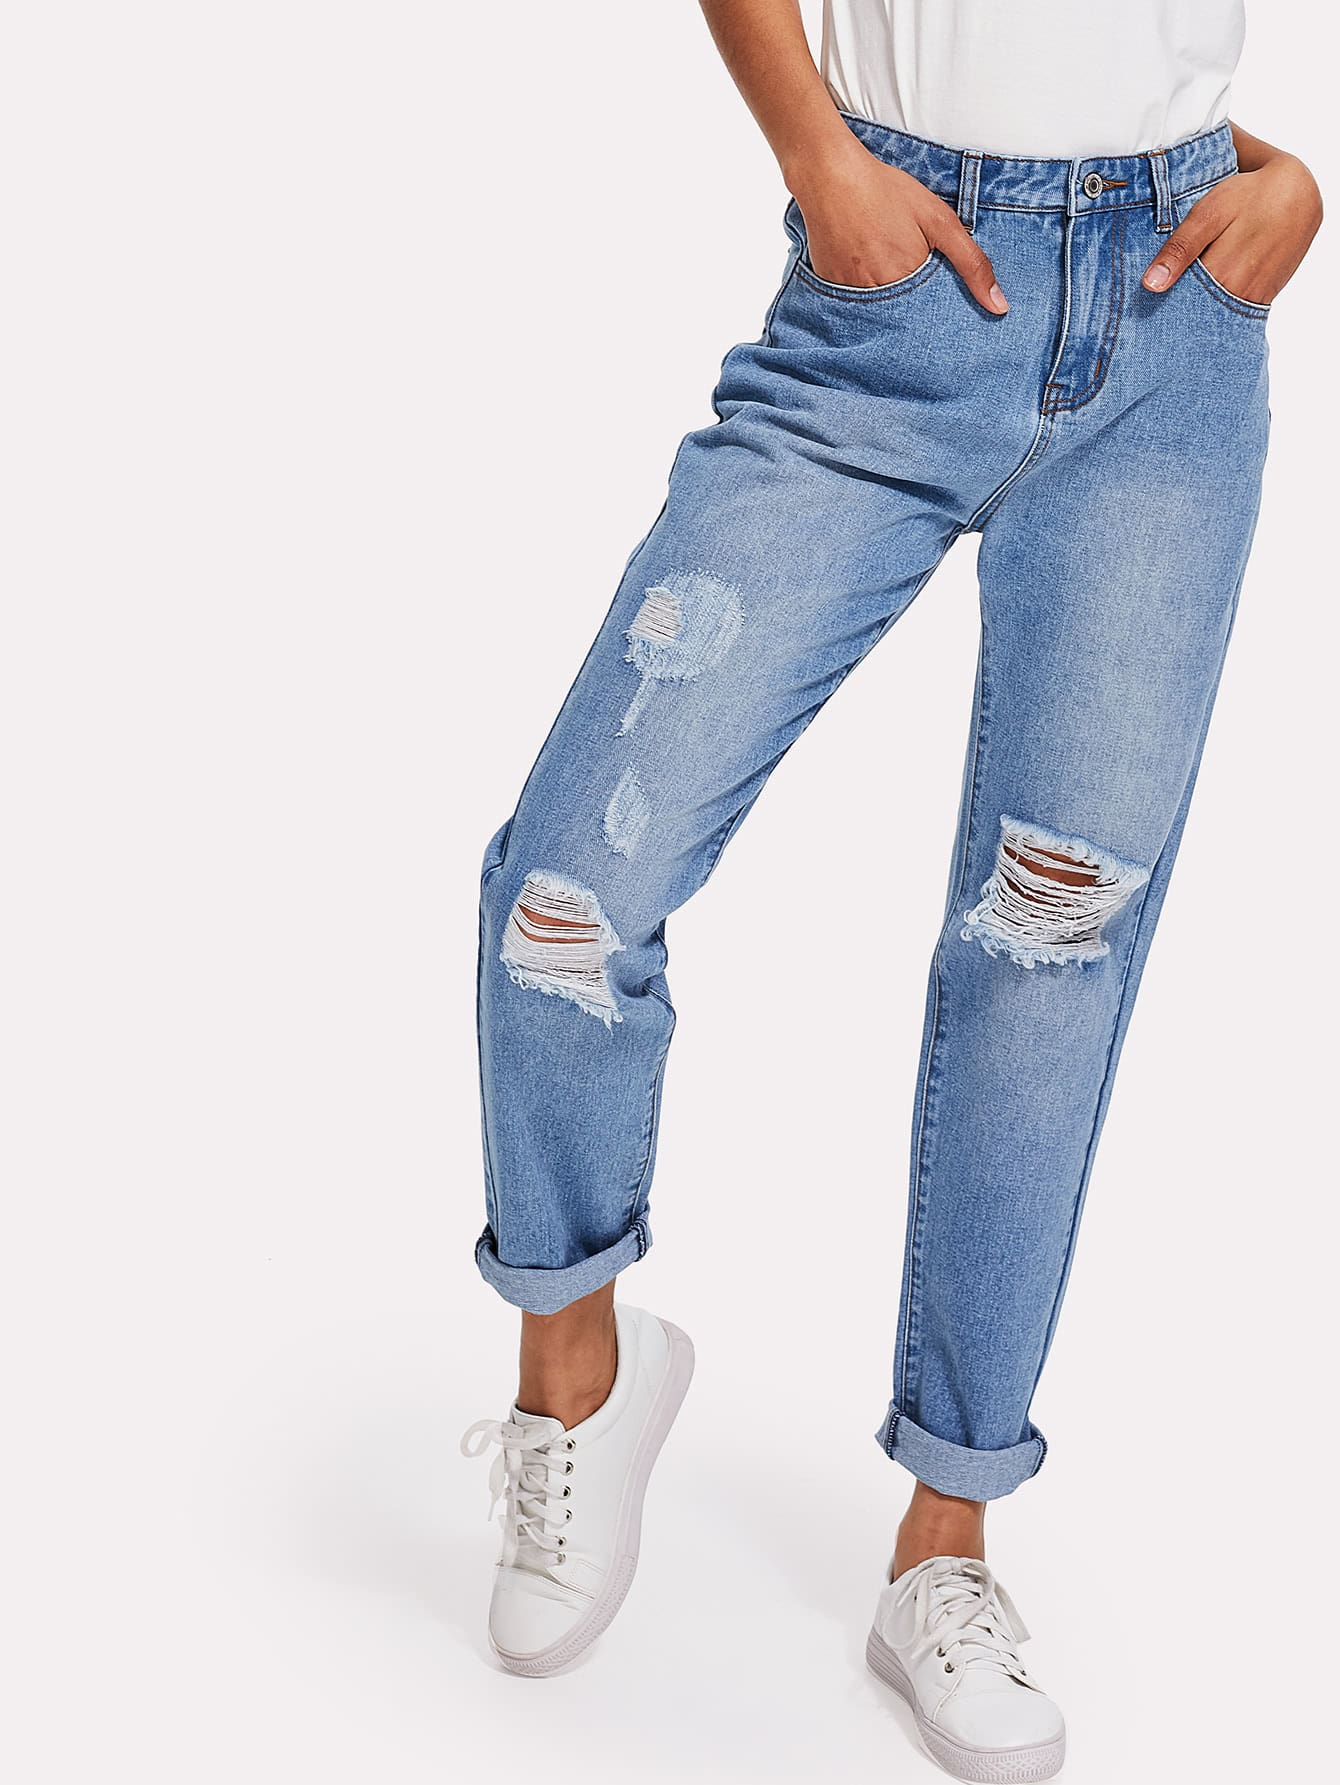 Bleached Wash Ripped Tapered Jeans boyfriend hole ripped low waist jeans women vintage lace floral cool denim pencil pants lady bleached washed push up jeans femme